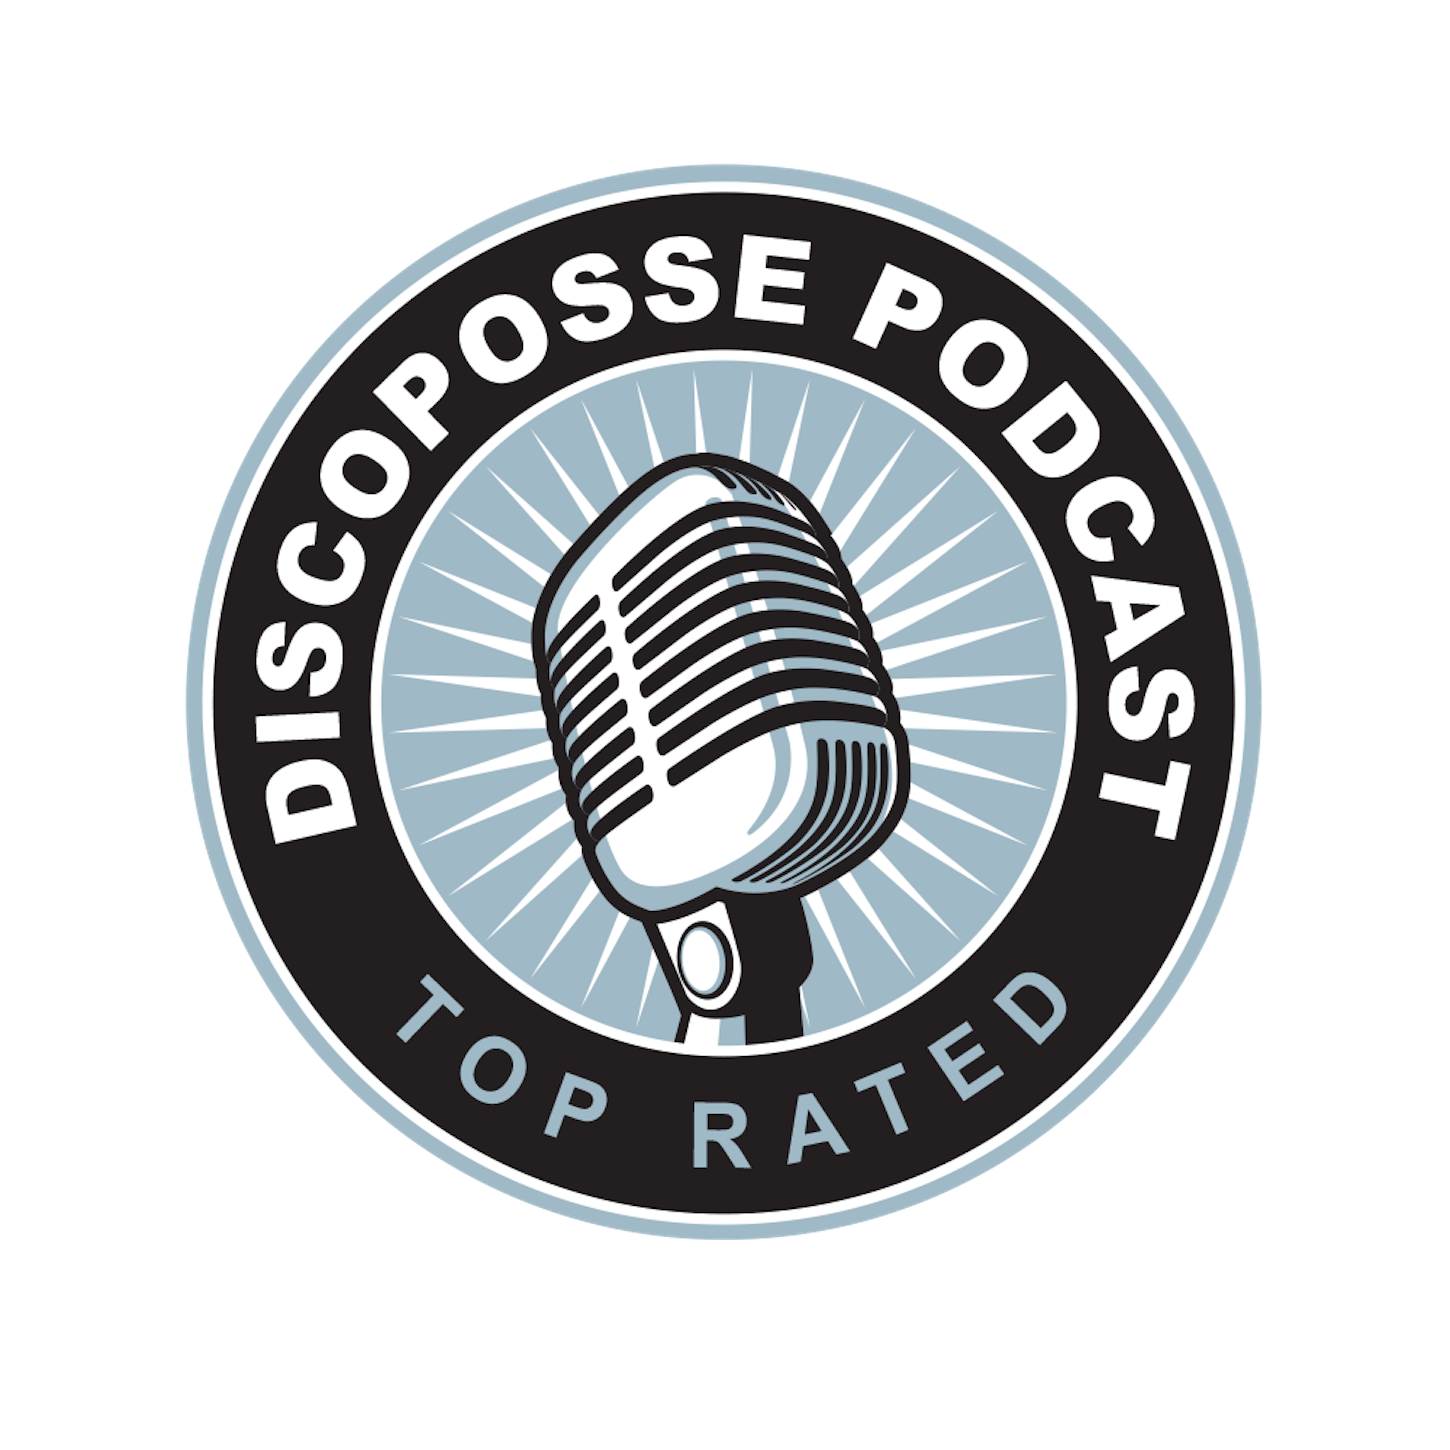 Ep. 54 - On Mentoring, with Eric Wright (@DiscoPosse)